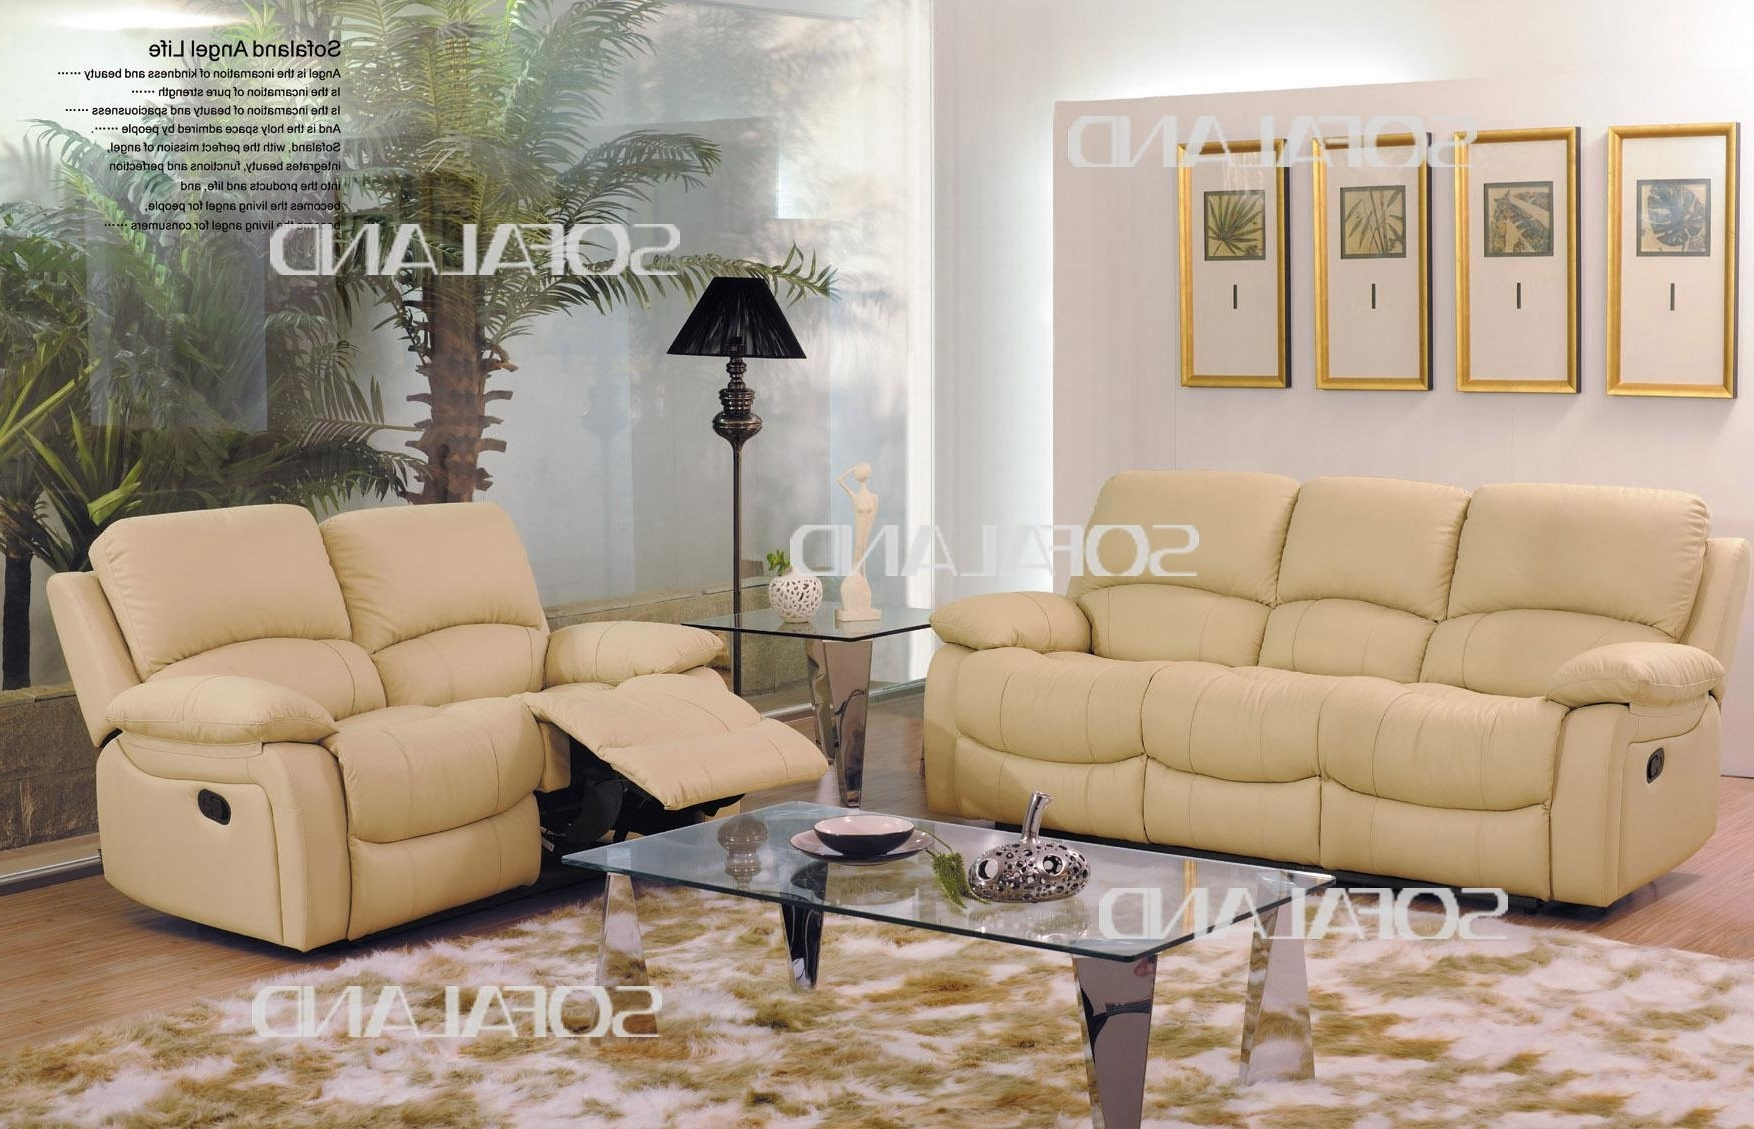 Famous Colored Leather Sofas Sofa Caramel Furniture Light Brown Yellow Within Cream Colored Sofas (View 18 of 20)